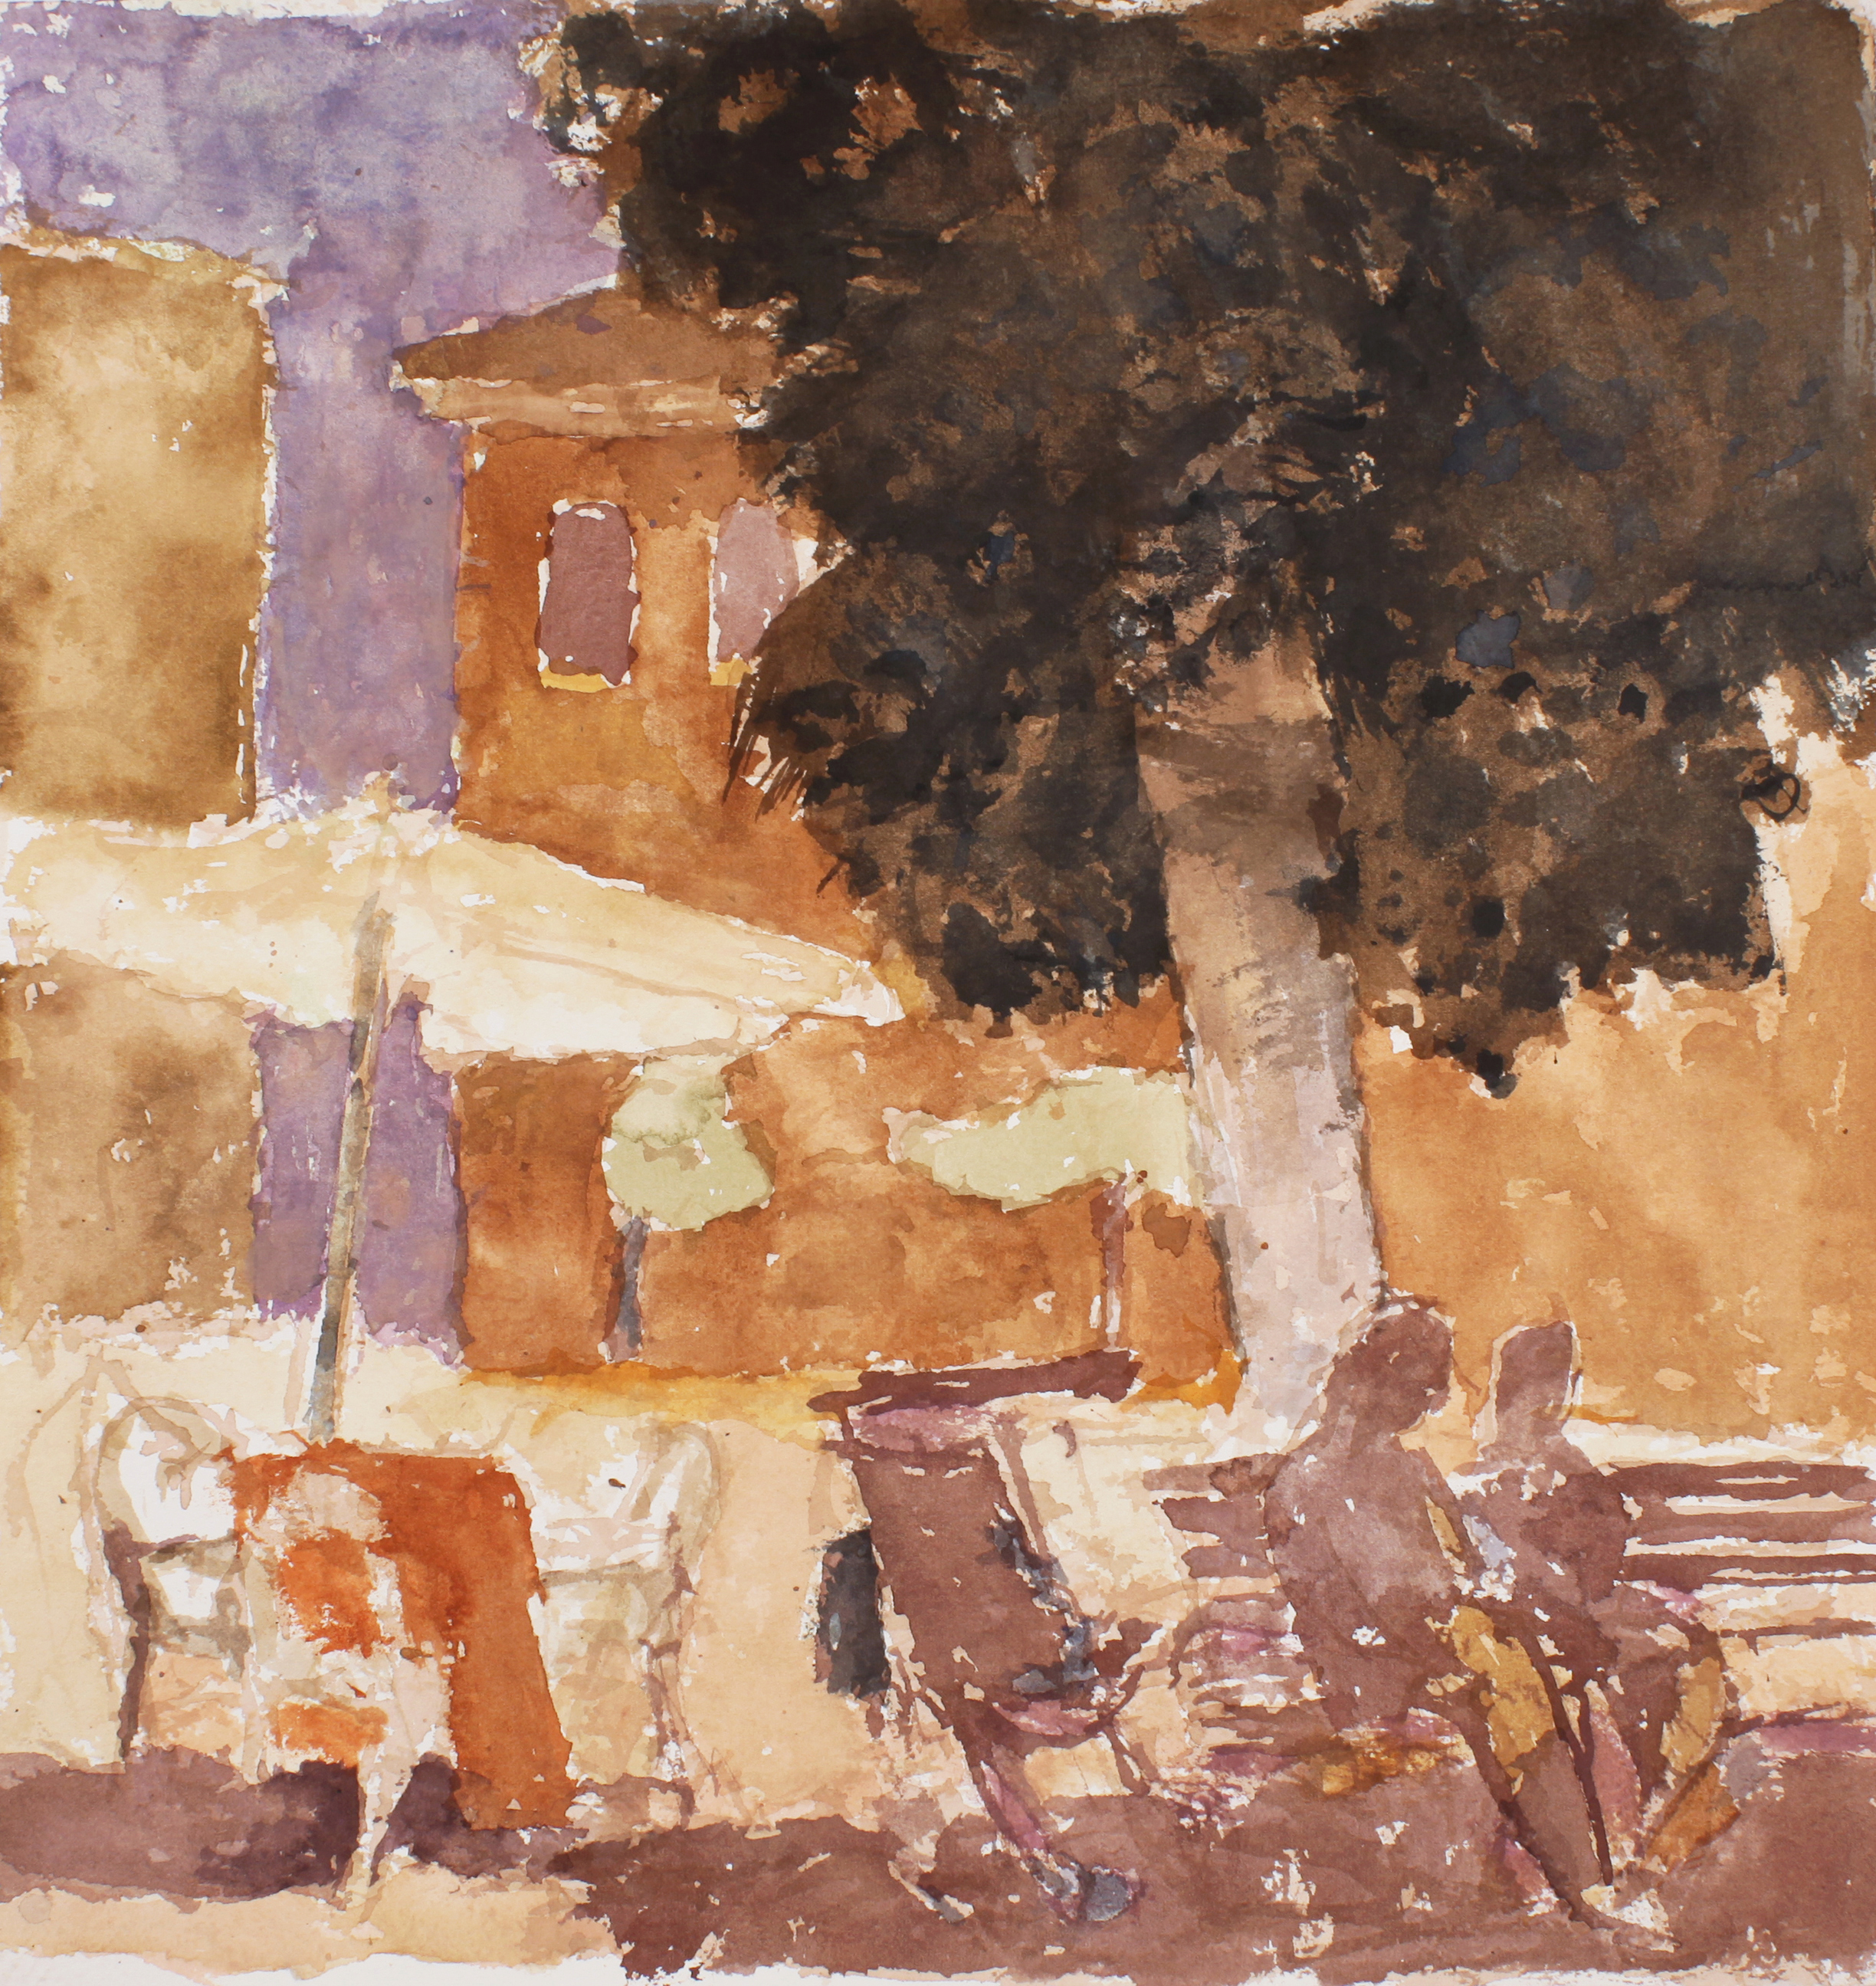 2000_San_Giacomo_Del_Orio_watercolour_and_pencil_on_paper_14x13in_WPF303.jpg